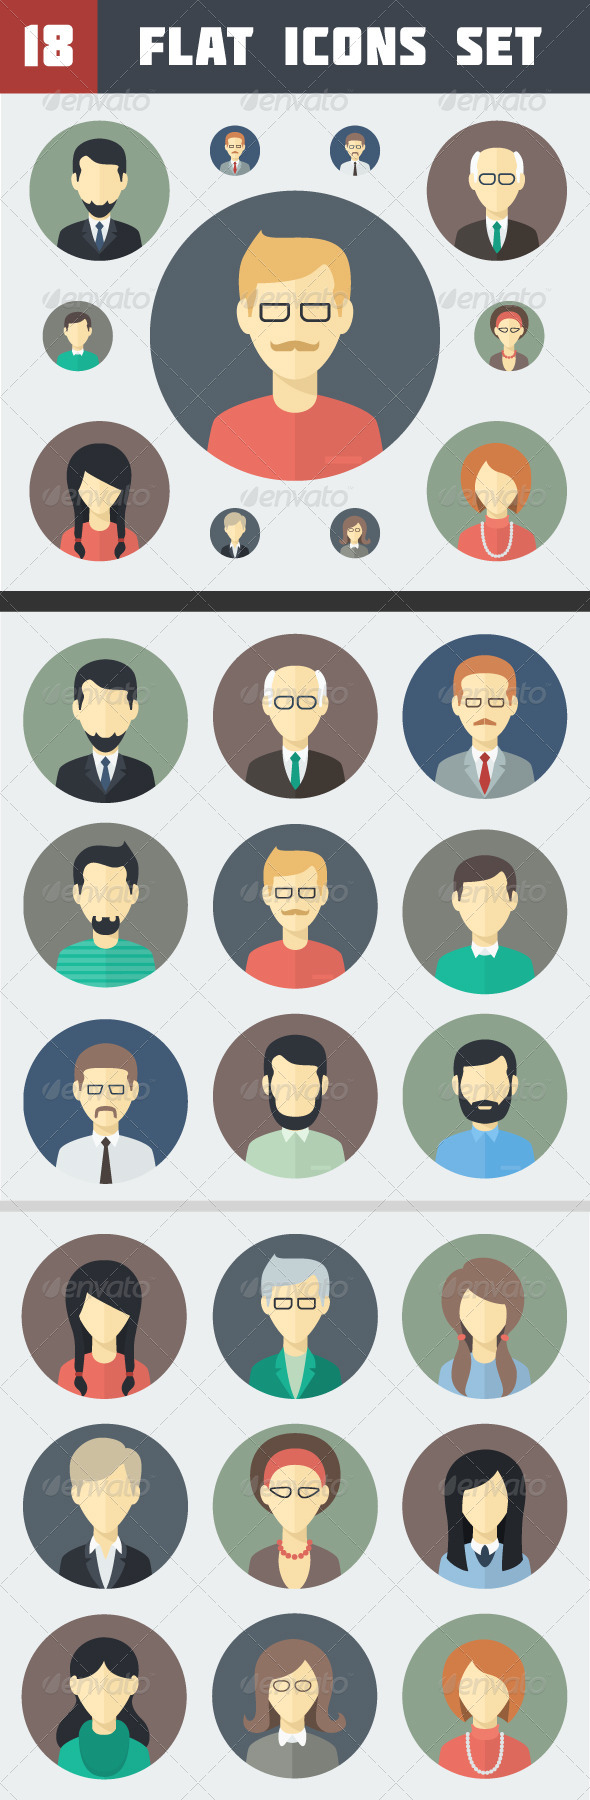 GraphicRiver Circle Flat Persons Icons Set 6613634